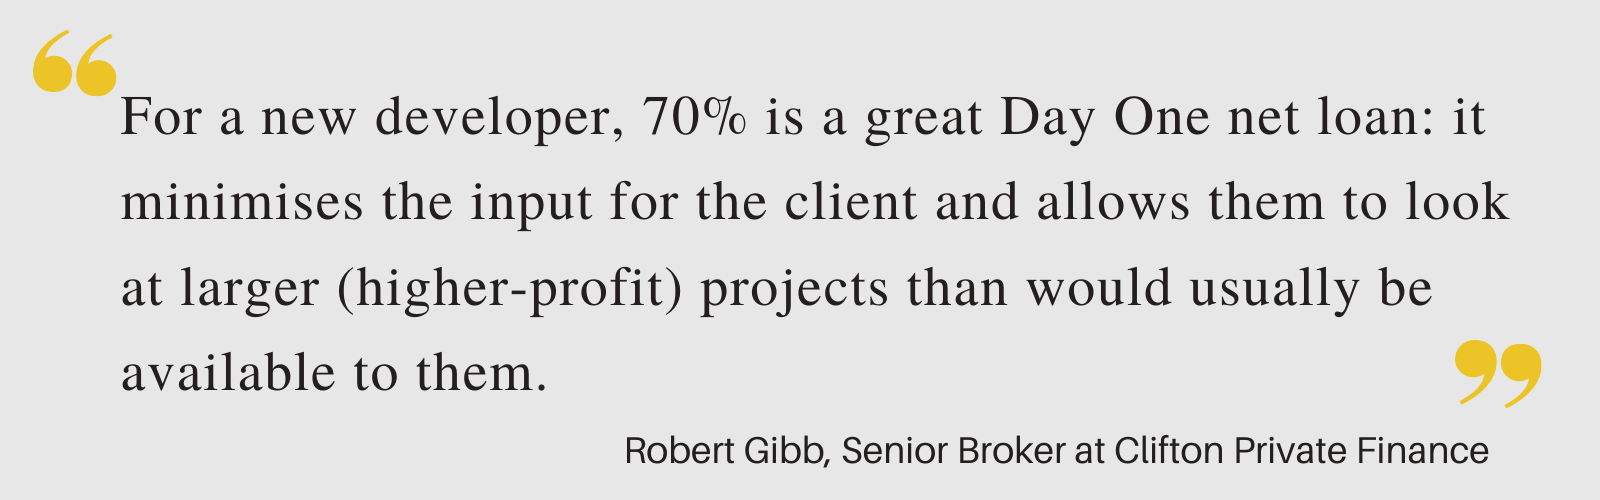 Robert-Gibb-Quote-70-Percent-Net-Bridging-Loan-For-Flat-Development-In-London